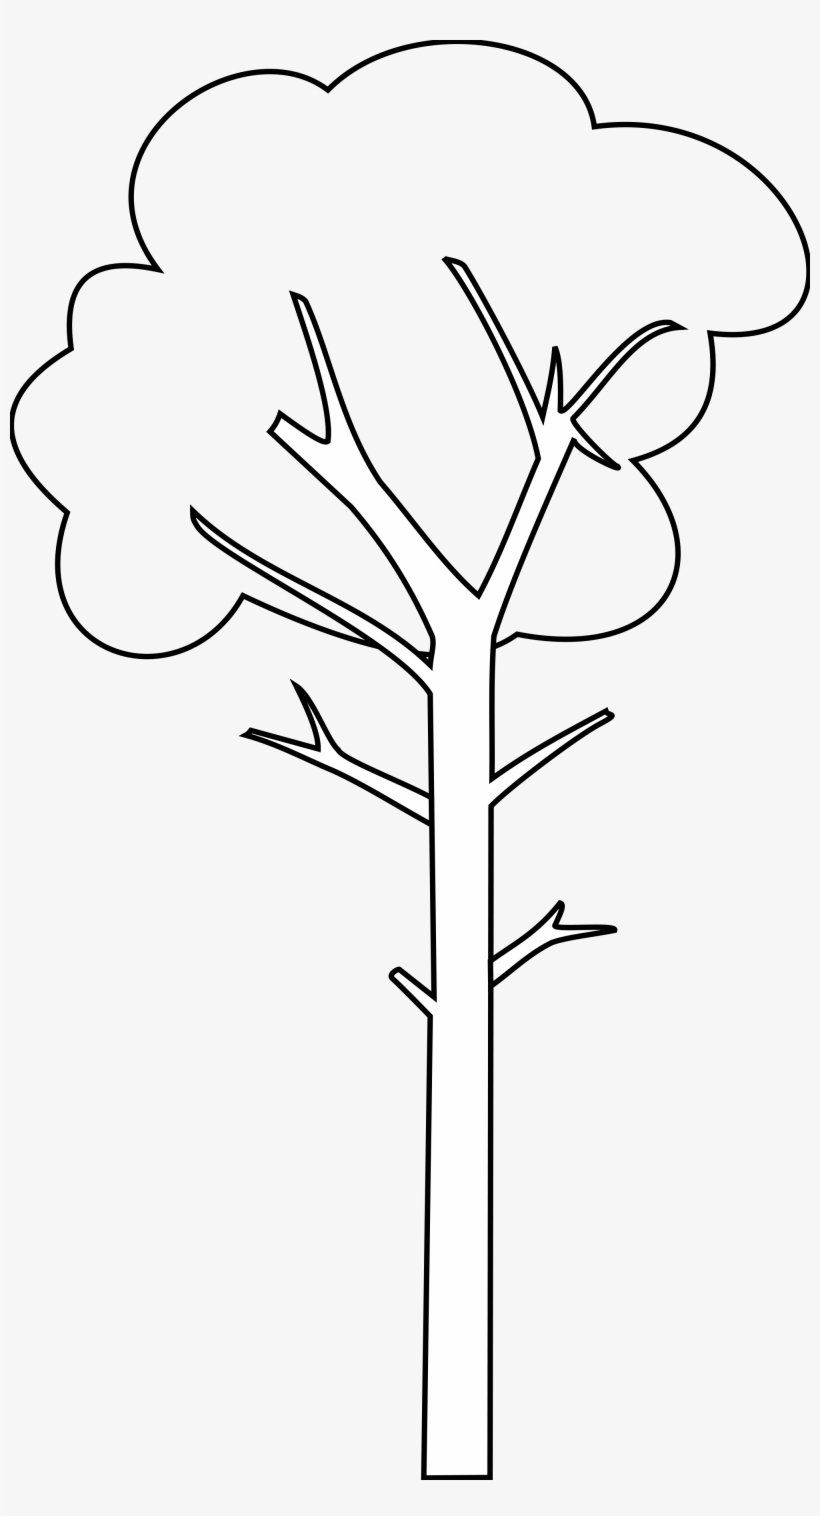 Tall Tree Cartoon Black And White.